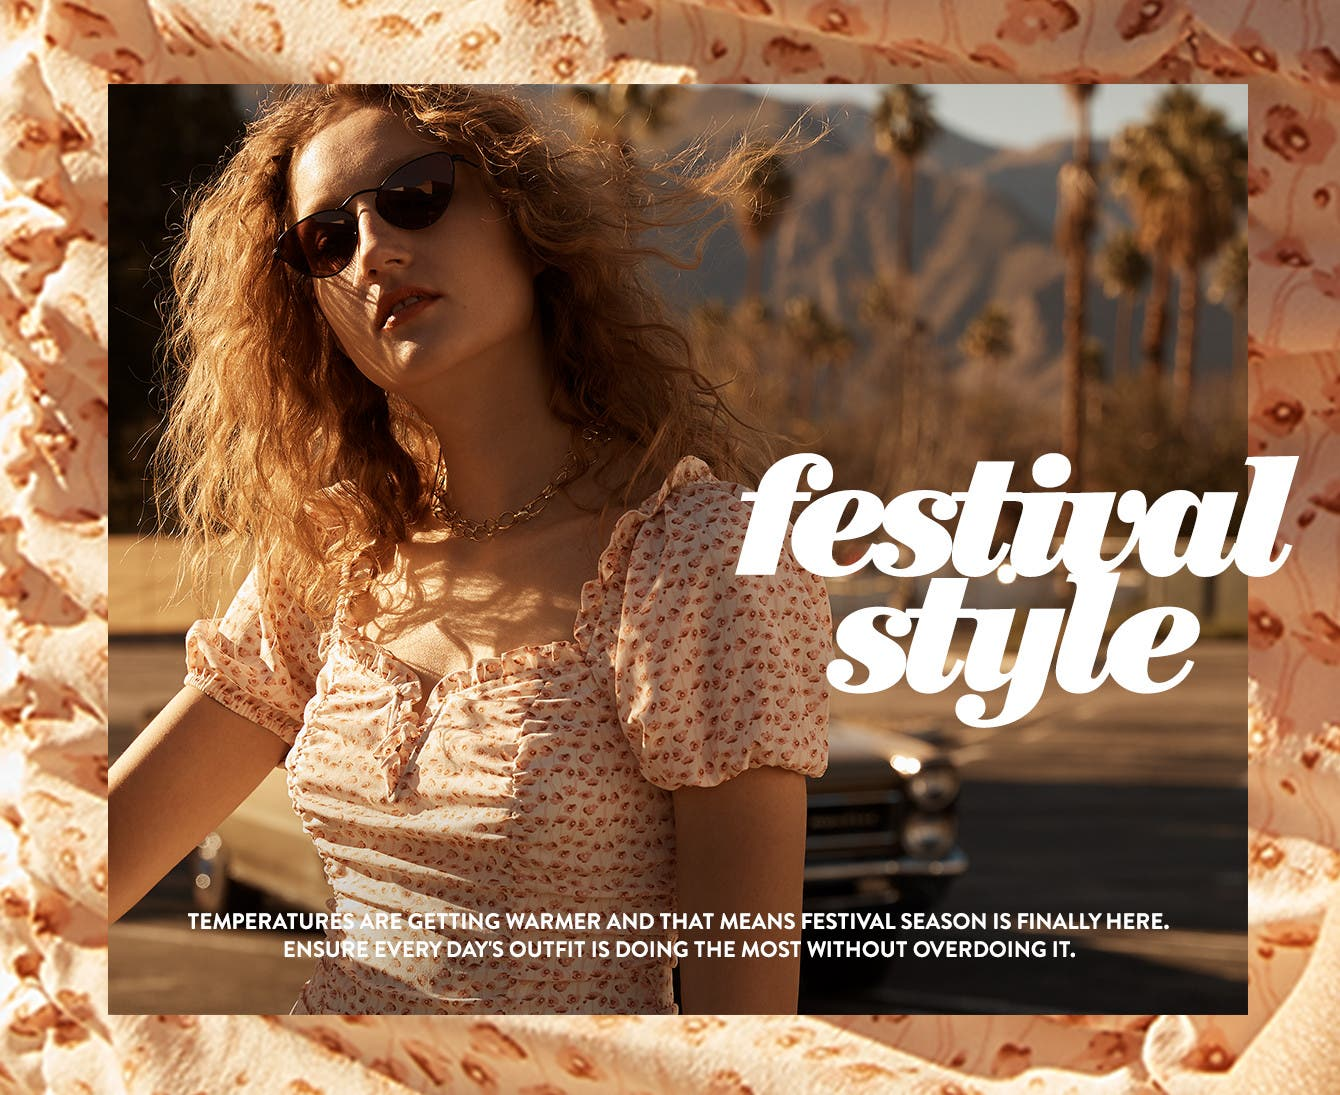 Festival style. Temperatures are getting warmer and that means festival season is finally here. Ensure every day's outfit is doing the most without overdoing it.